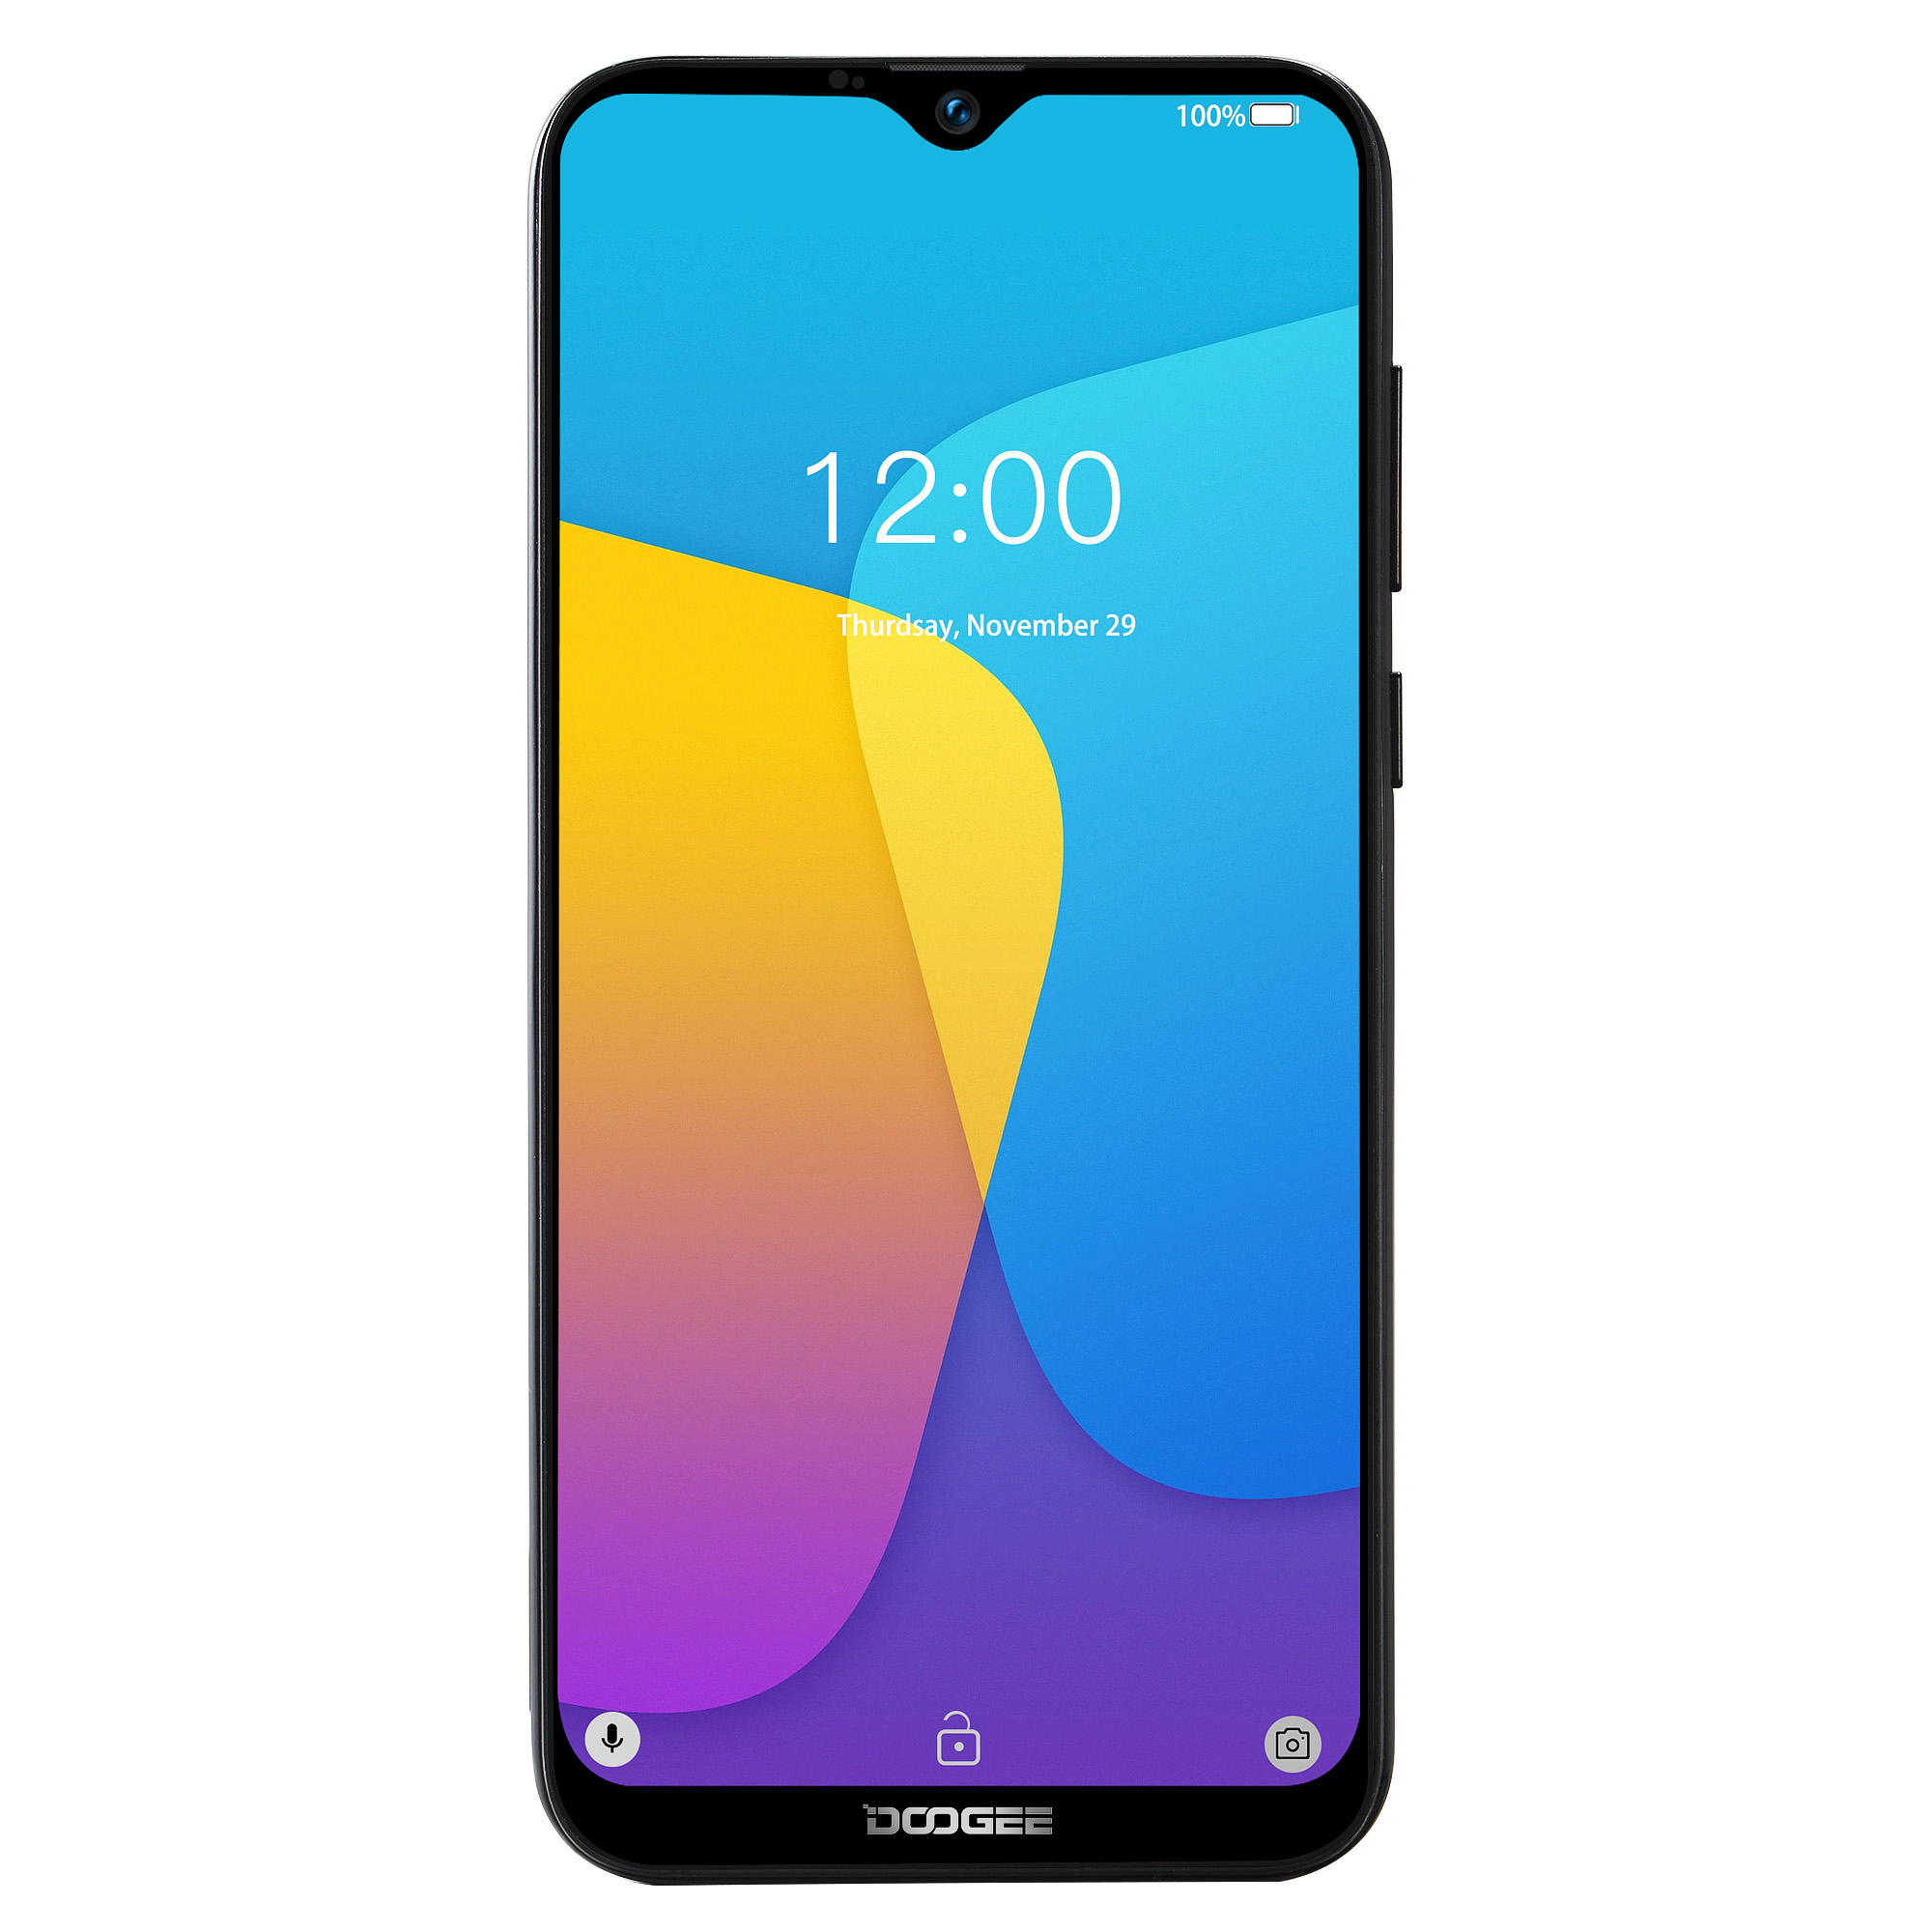 DOOGEE X90 6.1'' HD Android 9.0 19:9 1GB 16GB Face Unlock Smartphone 8MP Camera MT6580A Quad Core 3400mAh 5V/1A Mobile Phone